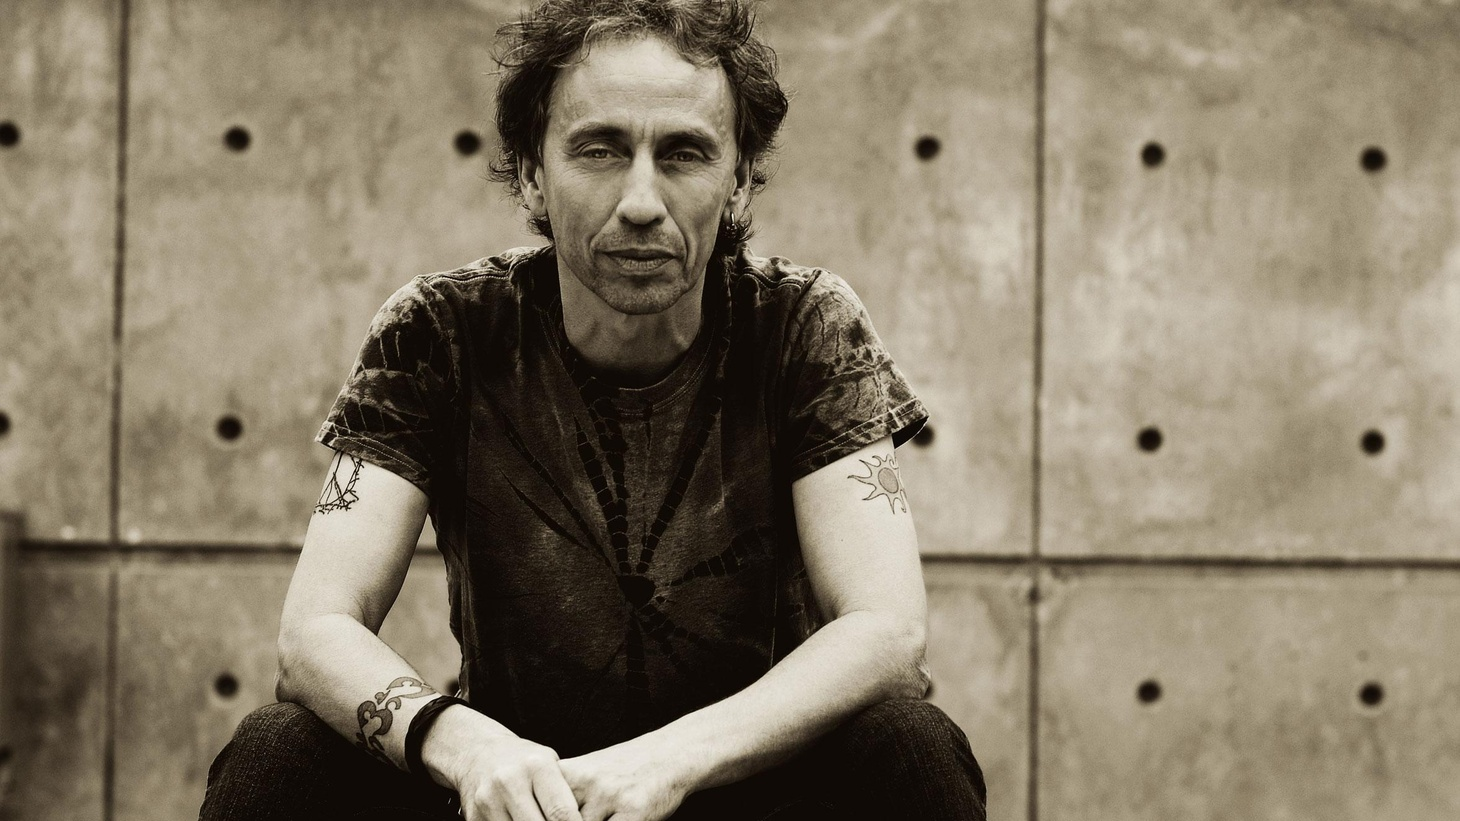 In this edition of Sounds Eclectic, host Nic Harcourt plays new, upcoming and recent releases from Radiohead, Femi Kuti, RL Burnside and many more. Featuring live in-studio performances from Shelby Lynne and Titan.